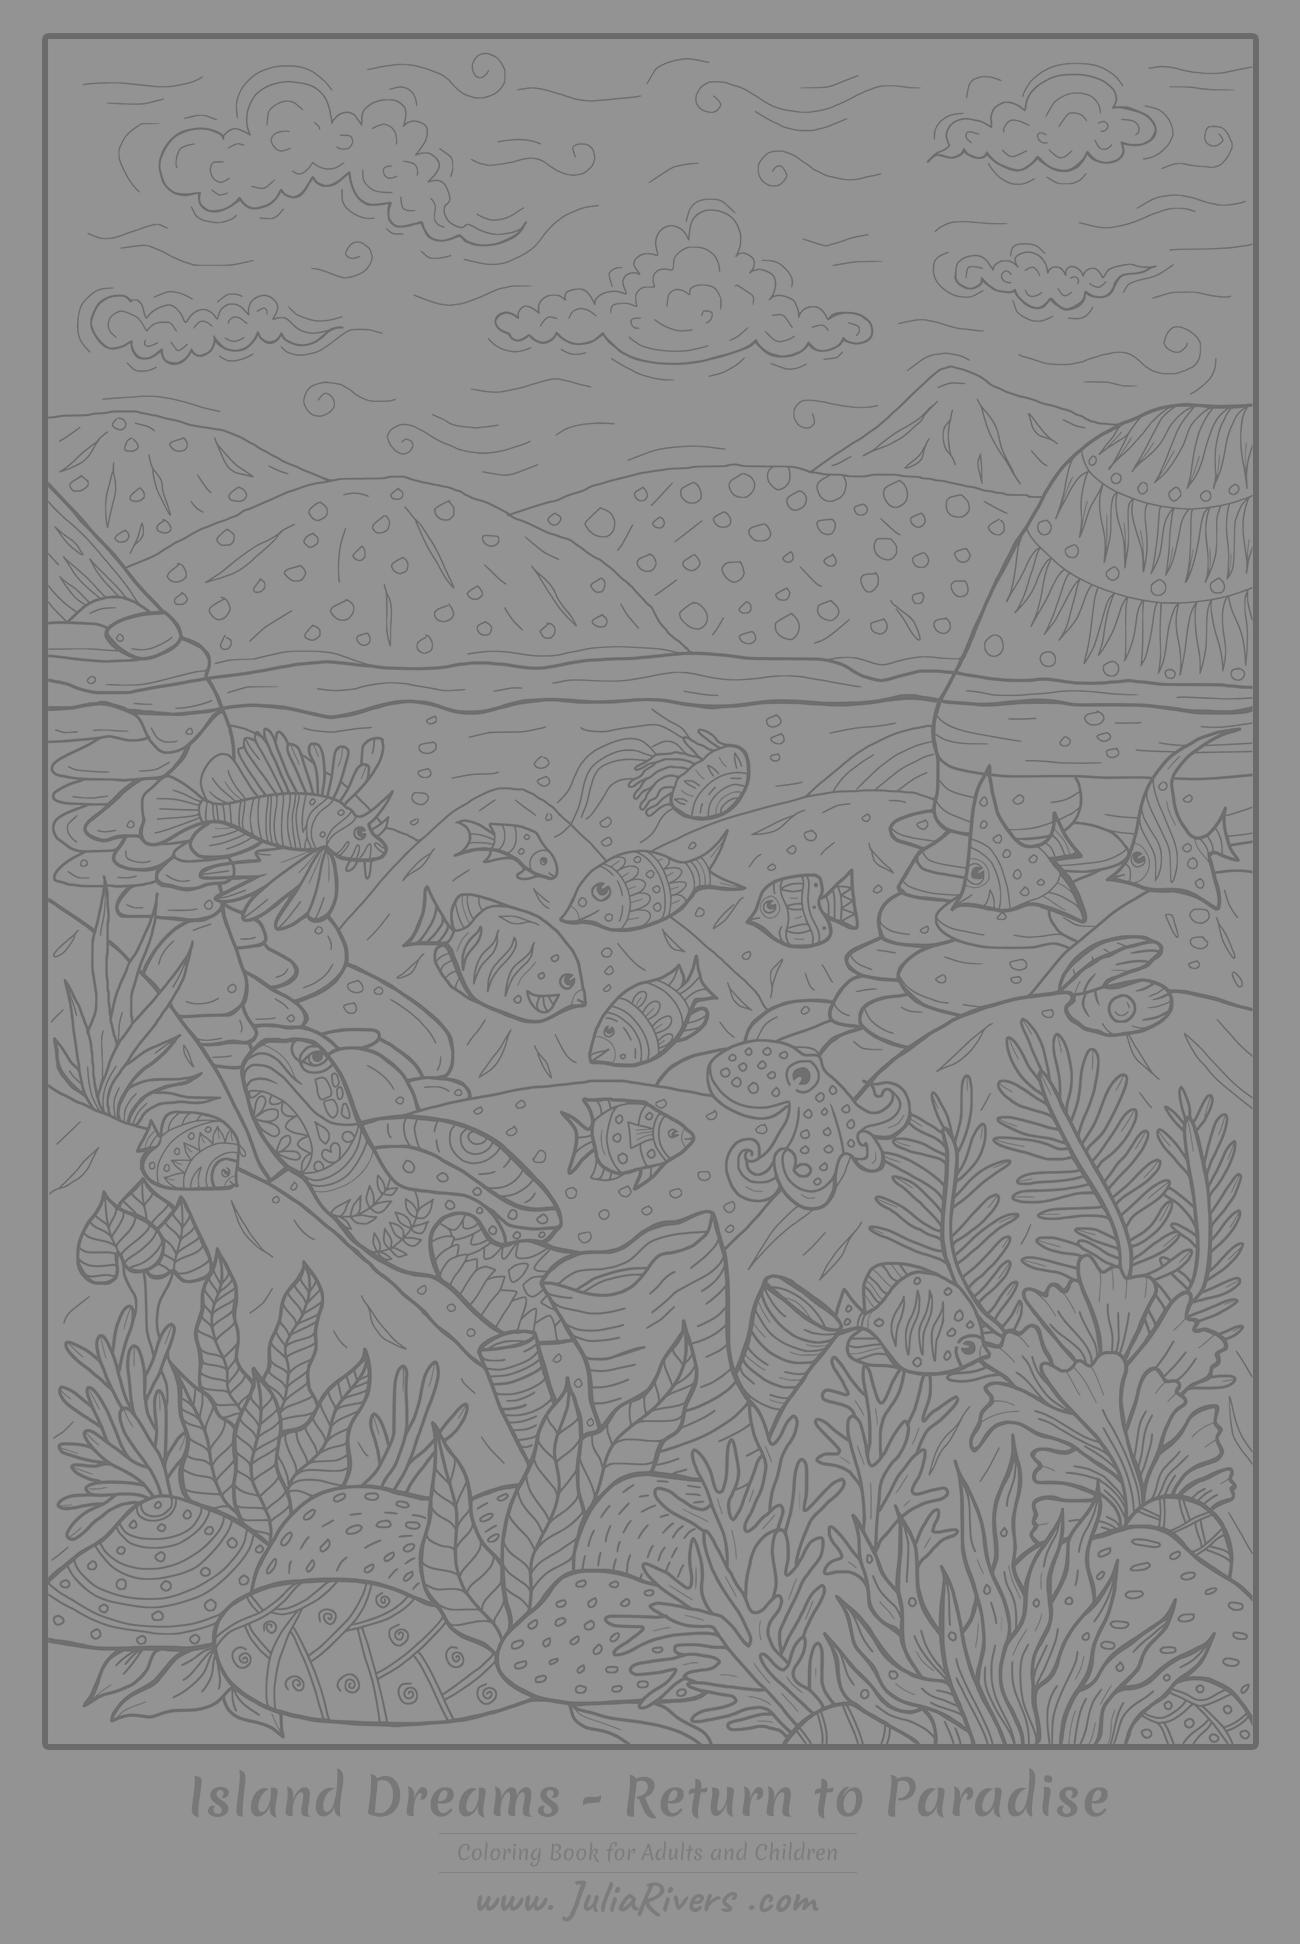 'Island Dreams : Return to Paradise' : Coloring page full of aquatic creatures and plant species ... and a beautiful landscape in background